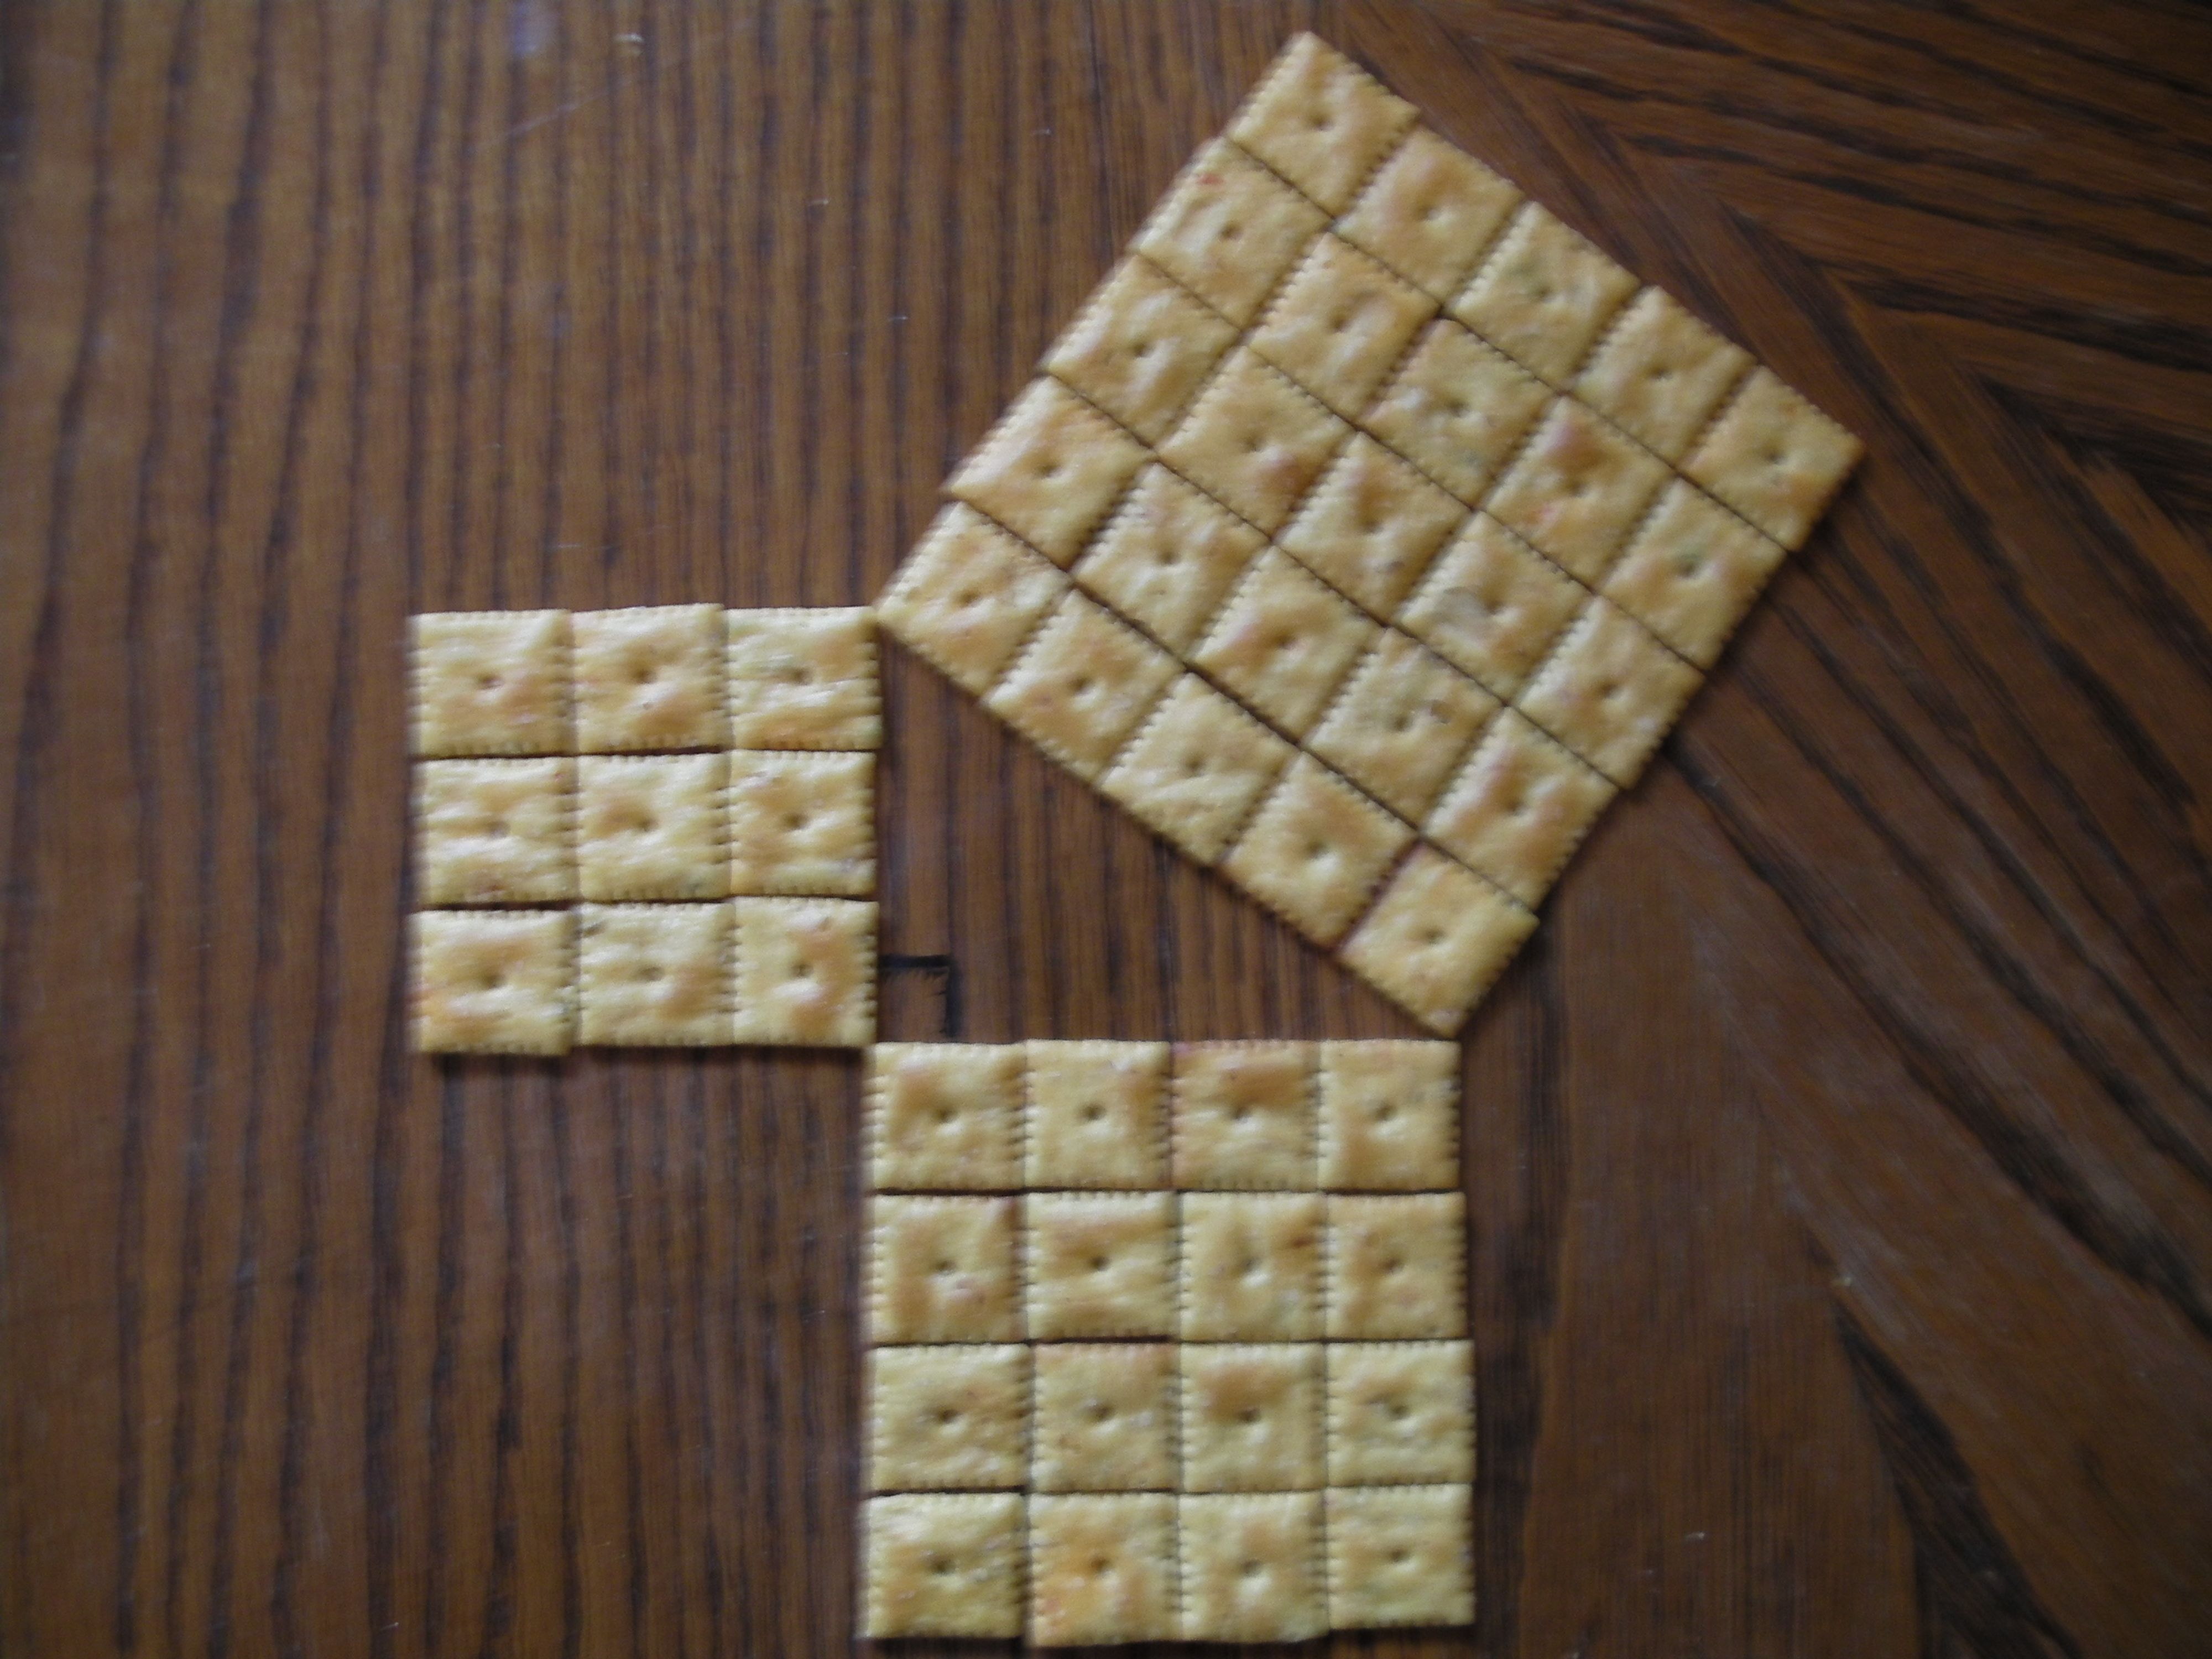 Fresh Ideas - Pythagorean Theorem with cheezits (With images